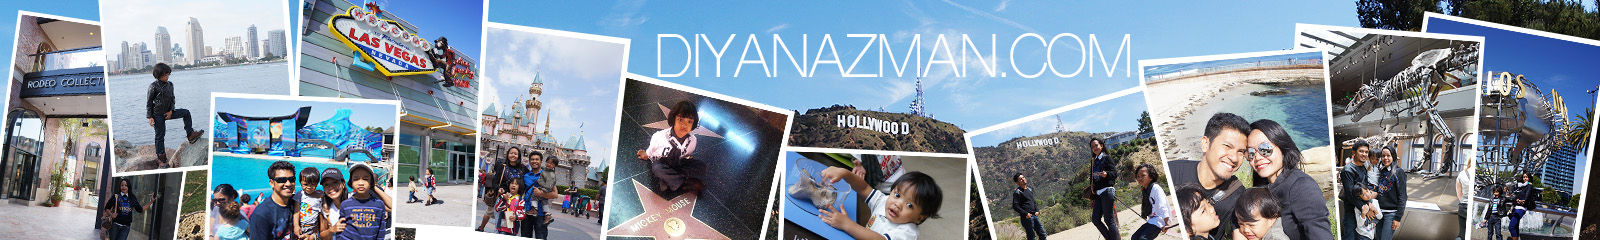 diyanazman.com